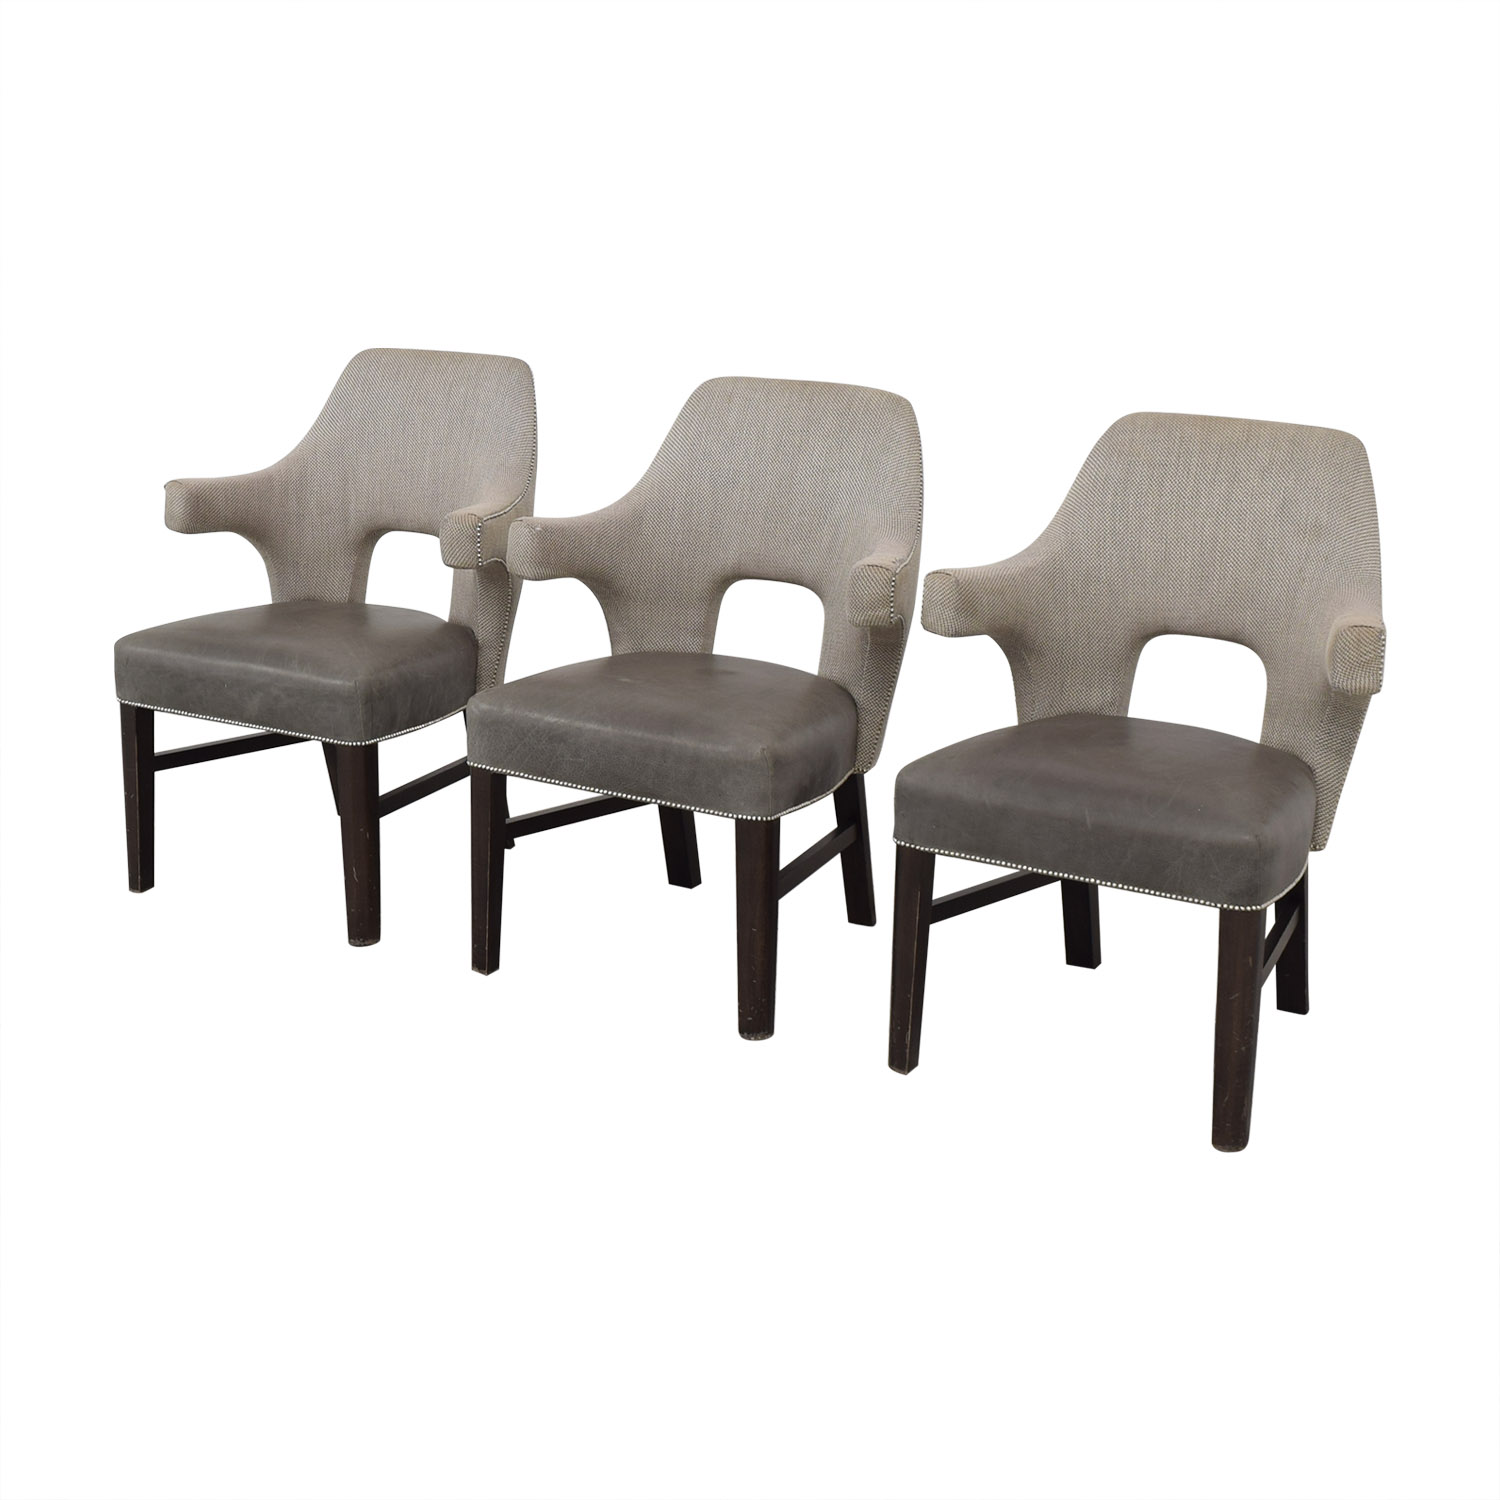 Thom Filicia Modern Dining Chairs Thom Filicia